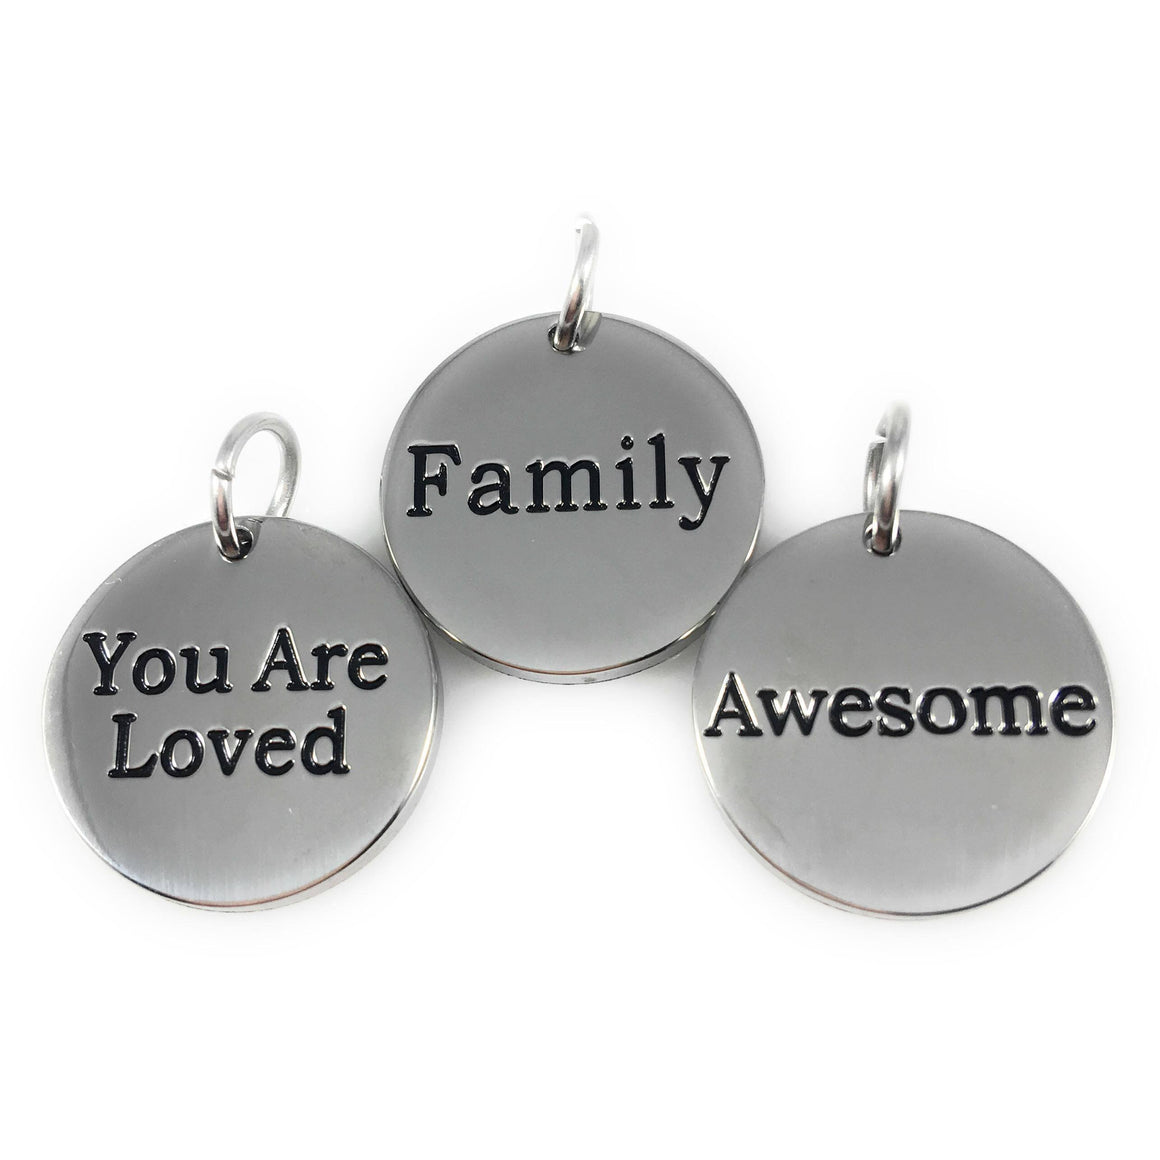 "Family You Are Loved Awesome Stainless Steel Charms 3/4"" Diameter Set of Three - Beads and Dangles"